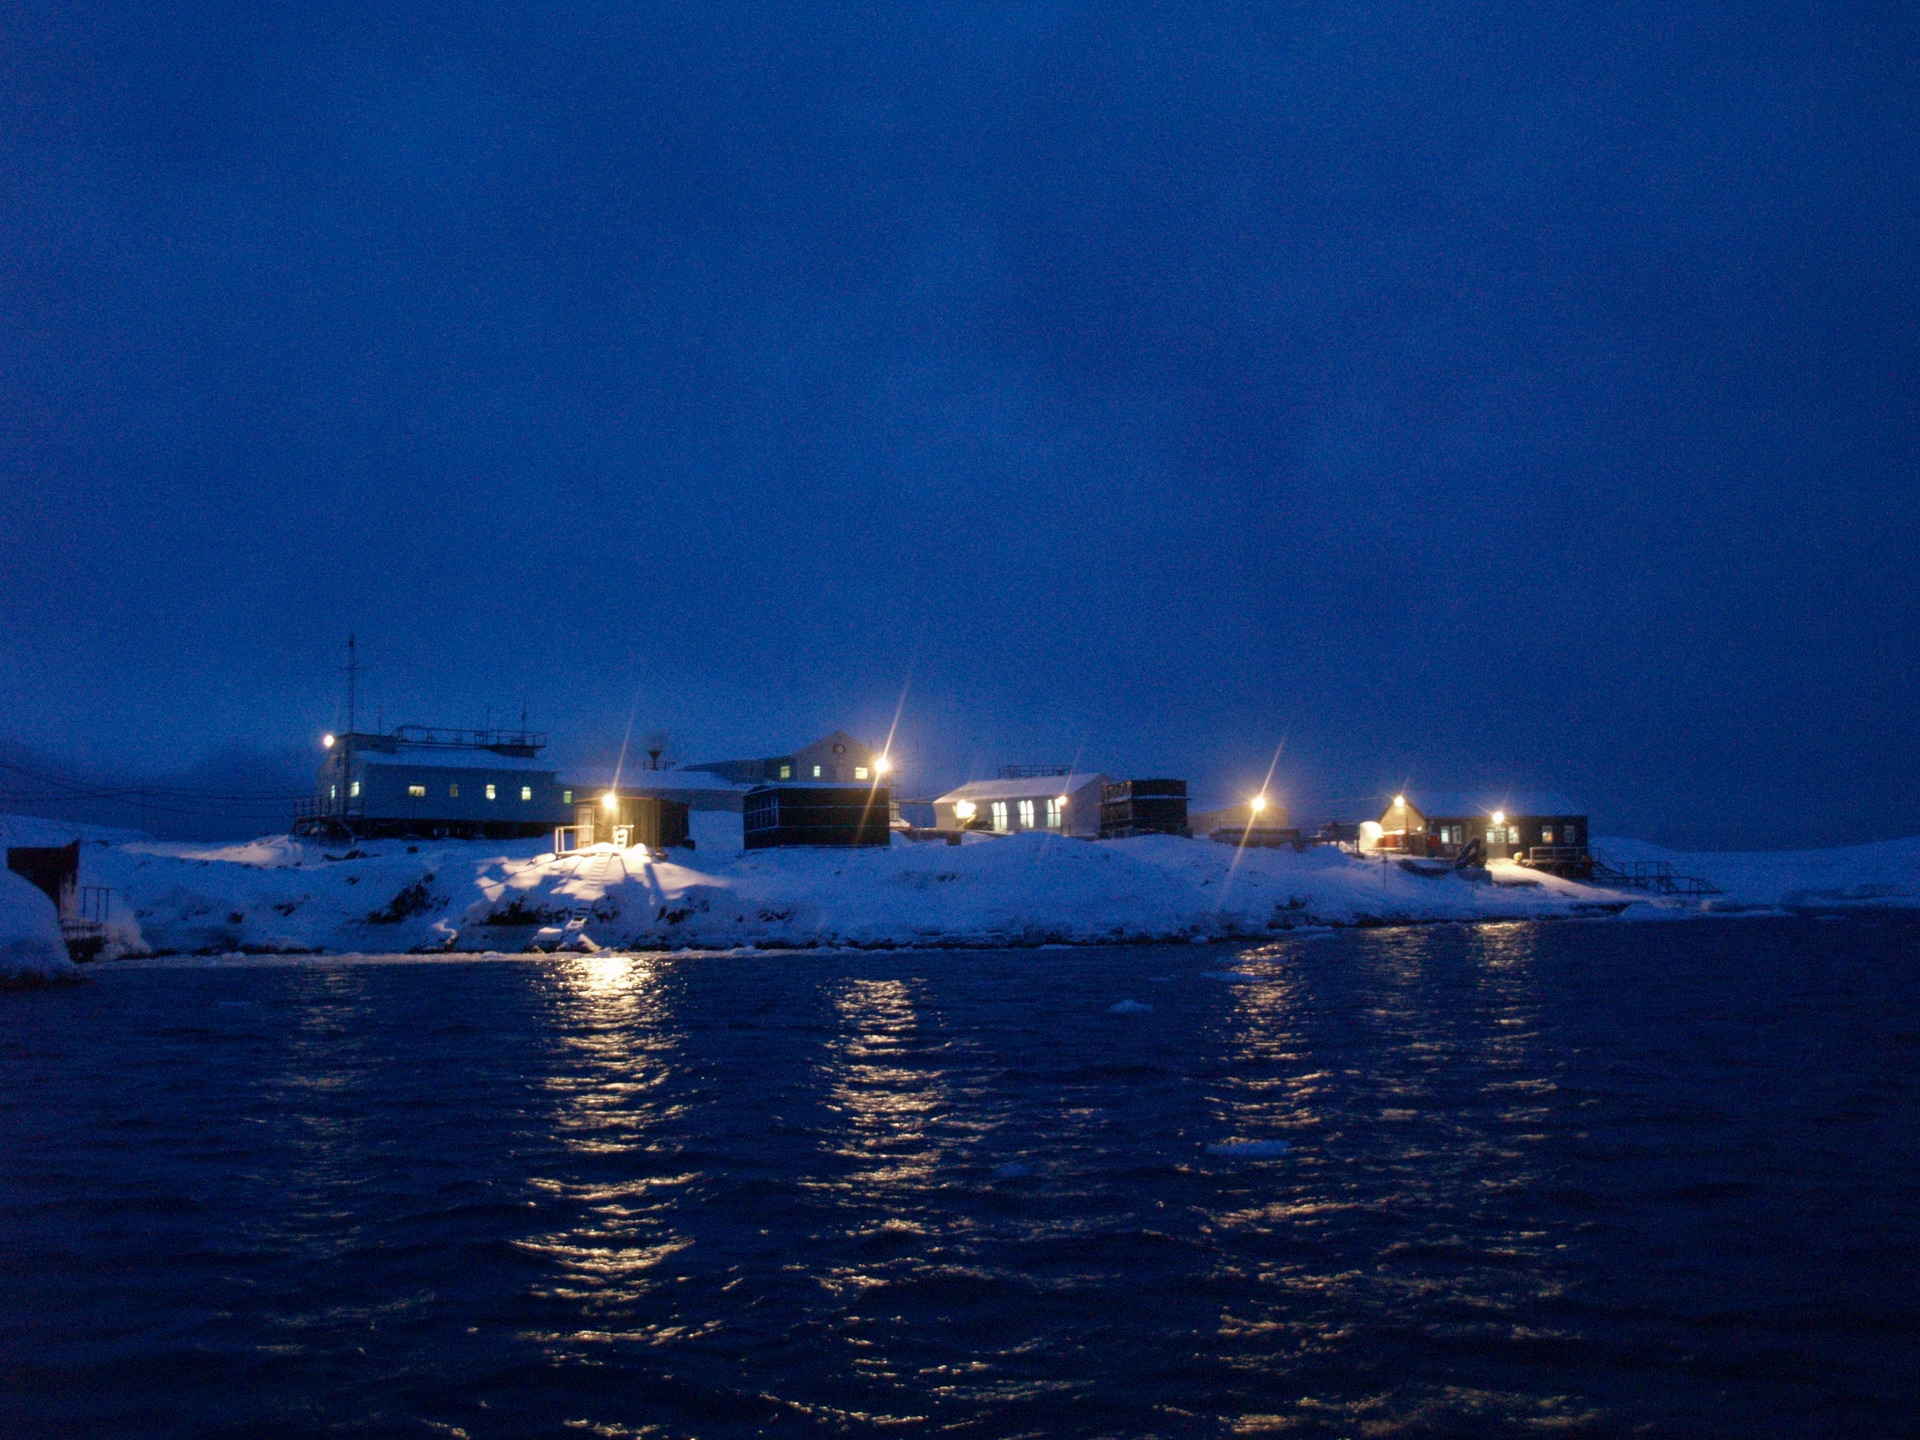 10 male and 2 female participants. The core membership of the 24th Ukrainian Antarctic Expedition has been determined